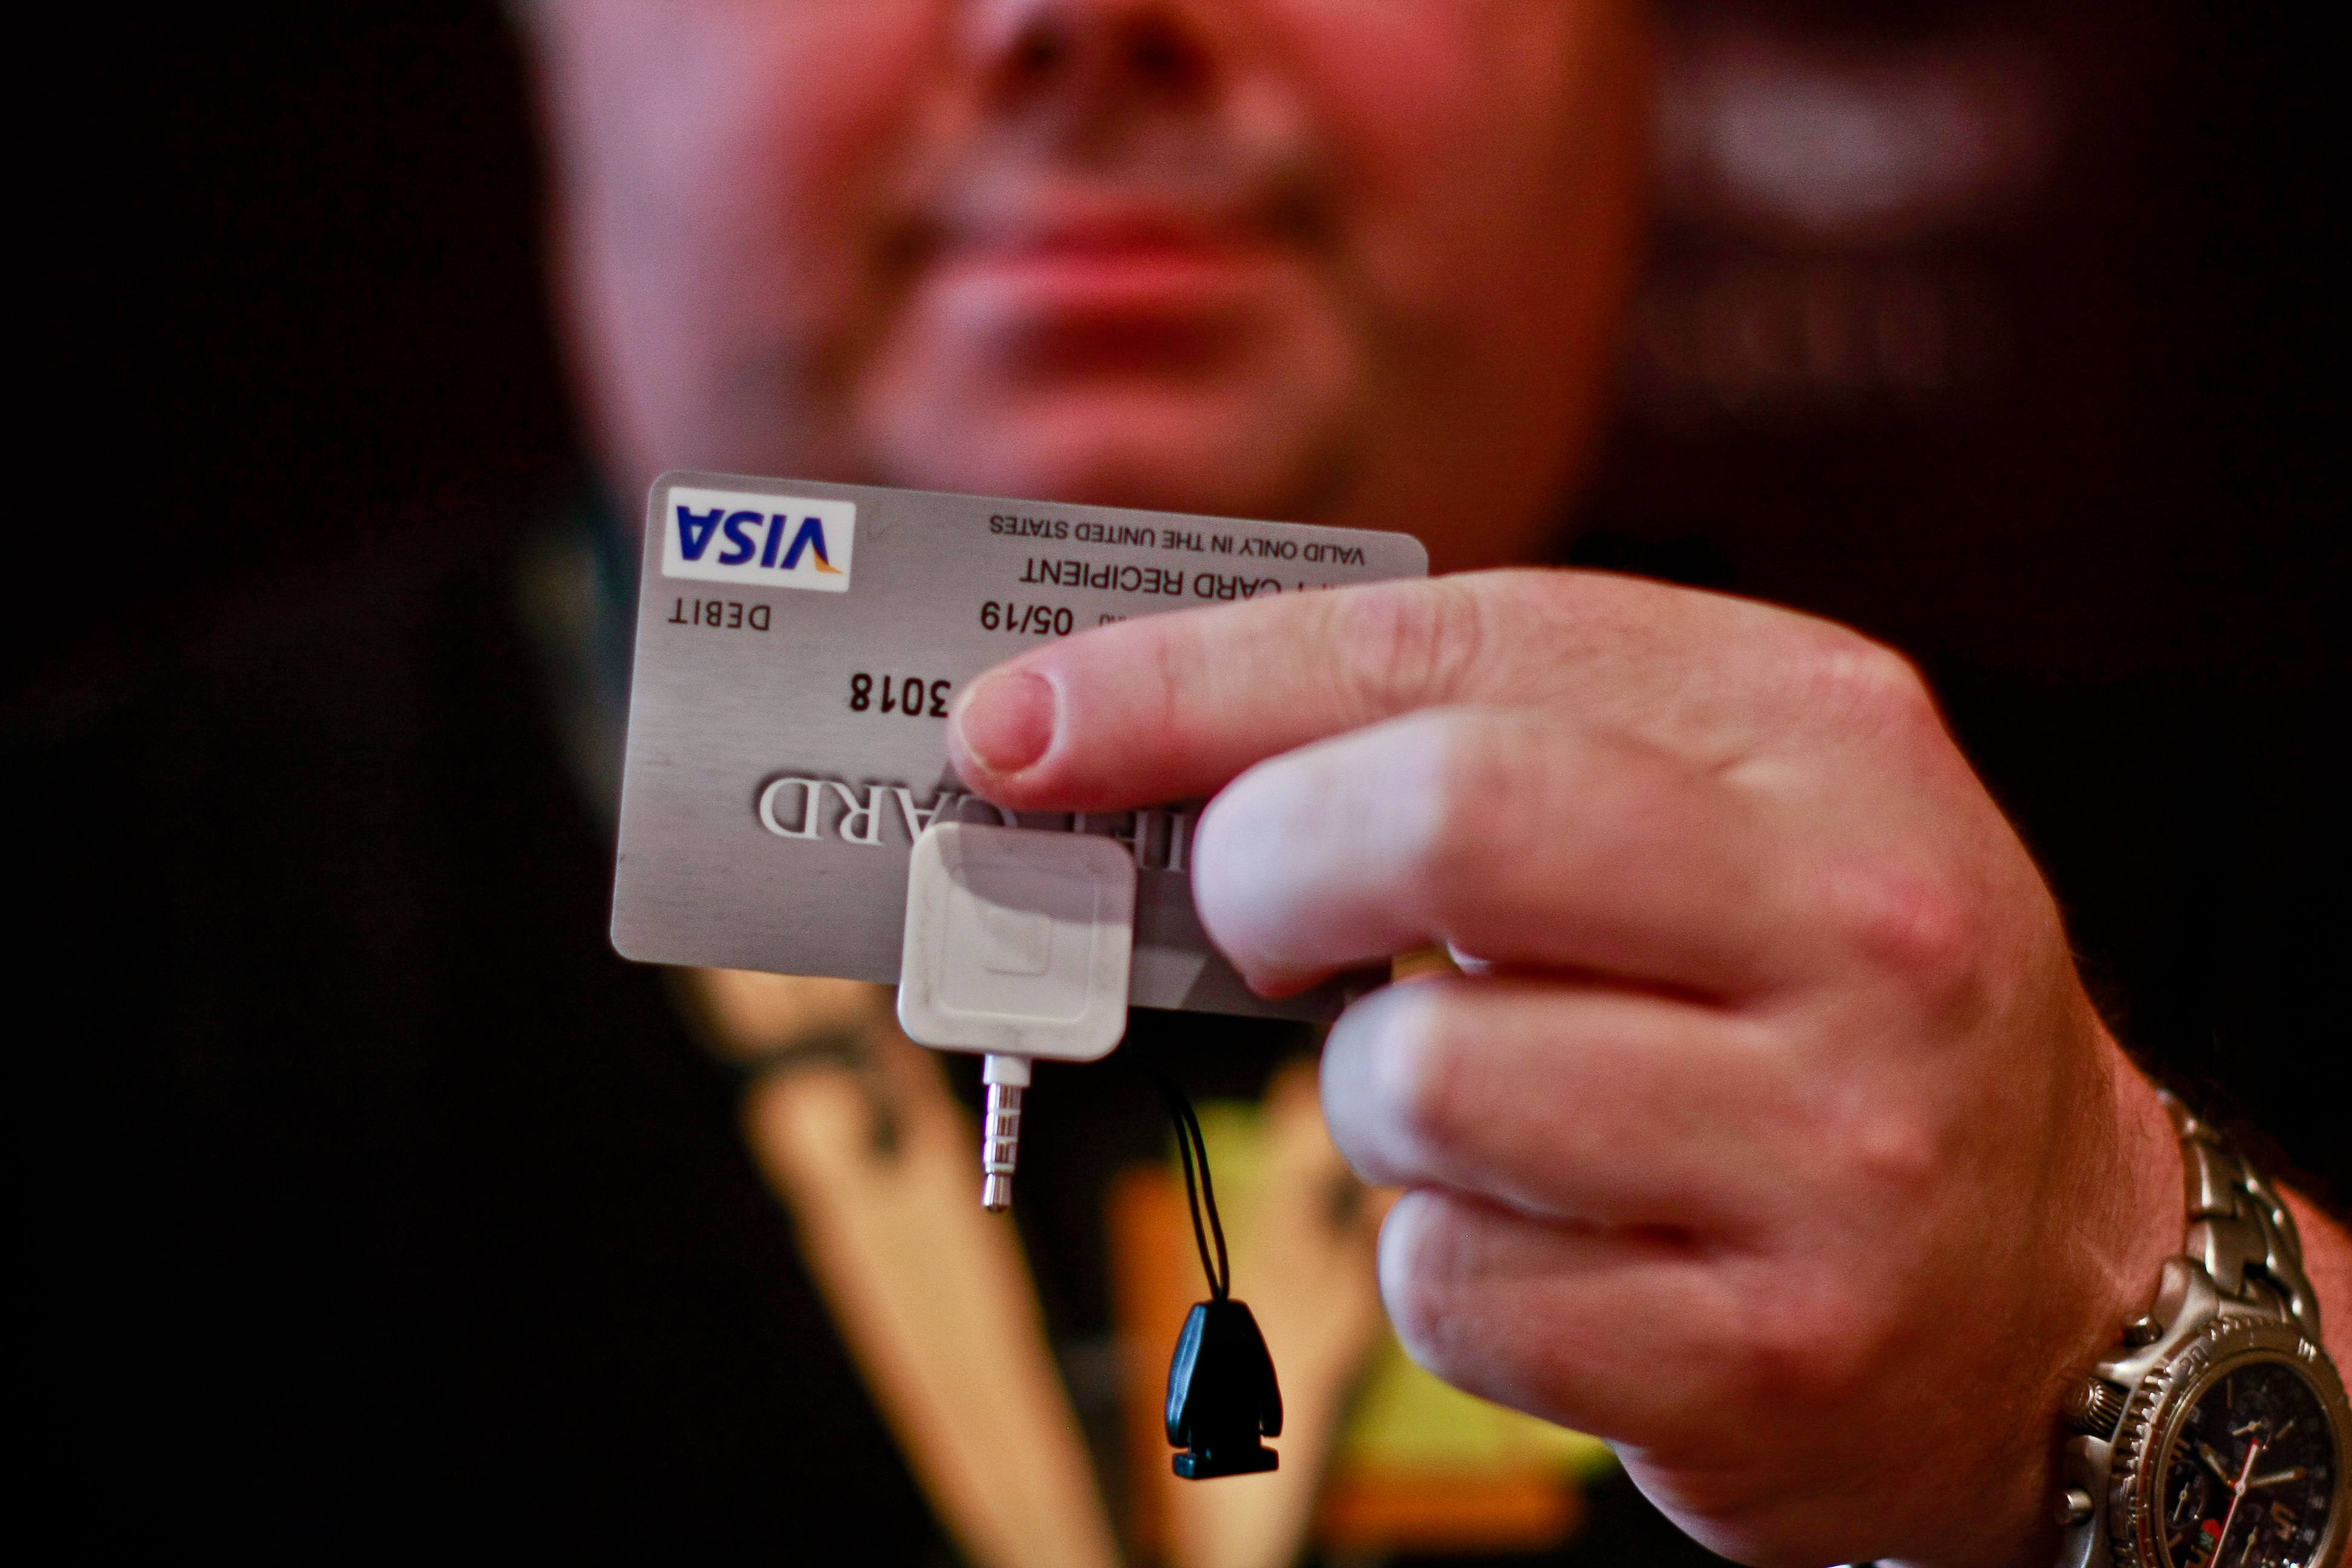 Zac Franken, director at Aperture Labs, holds up the Square device for processing credit cards with a mobile device. His company has just discovered two ways to steal credit card data using Square.